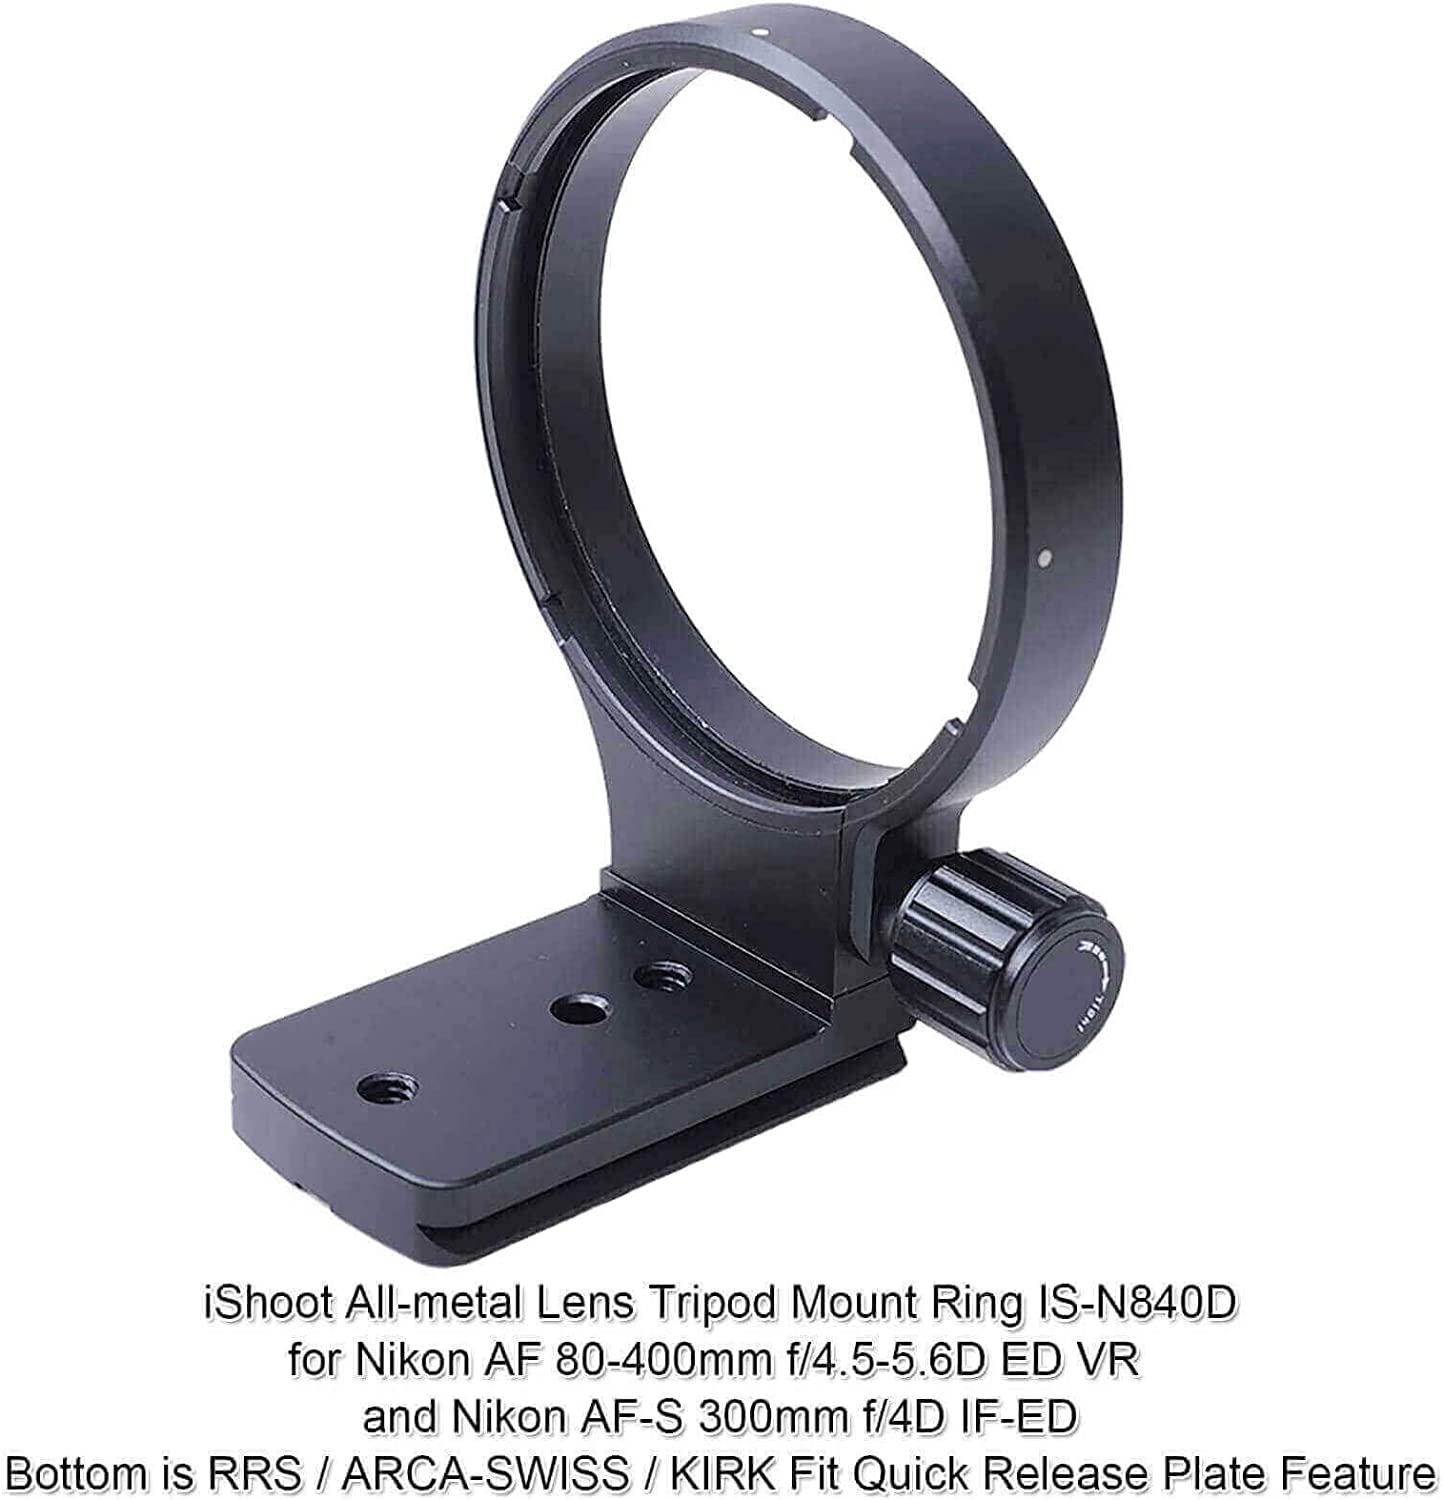 iShoot Lens Collar Tripod Mount Ring for Nikon AF 80-400mm f//4.5-5.6D ED VR and Nikon AF-S 300mm f//4D IF-ED Lenses-Camera Lens Tripod Support Bracket with Quick Release Plate fit ARCA-Swiss Ball Head